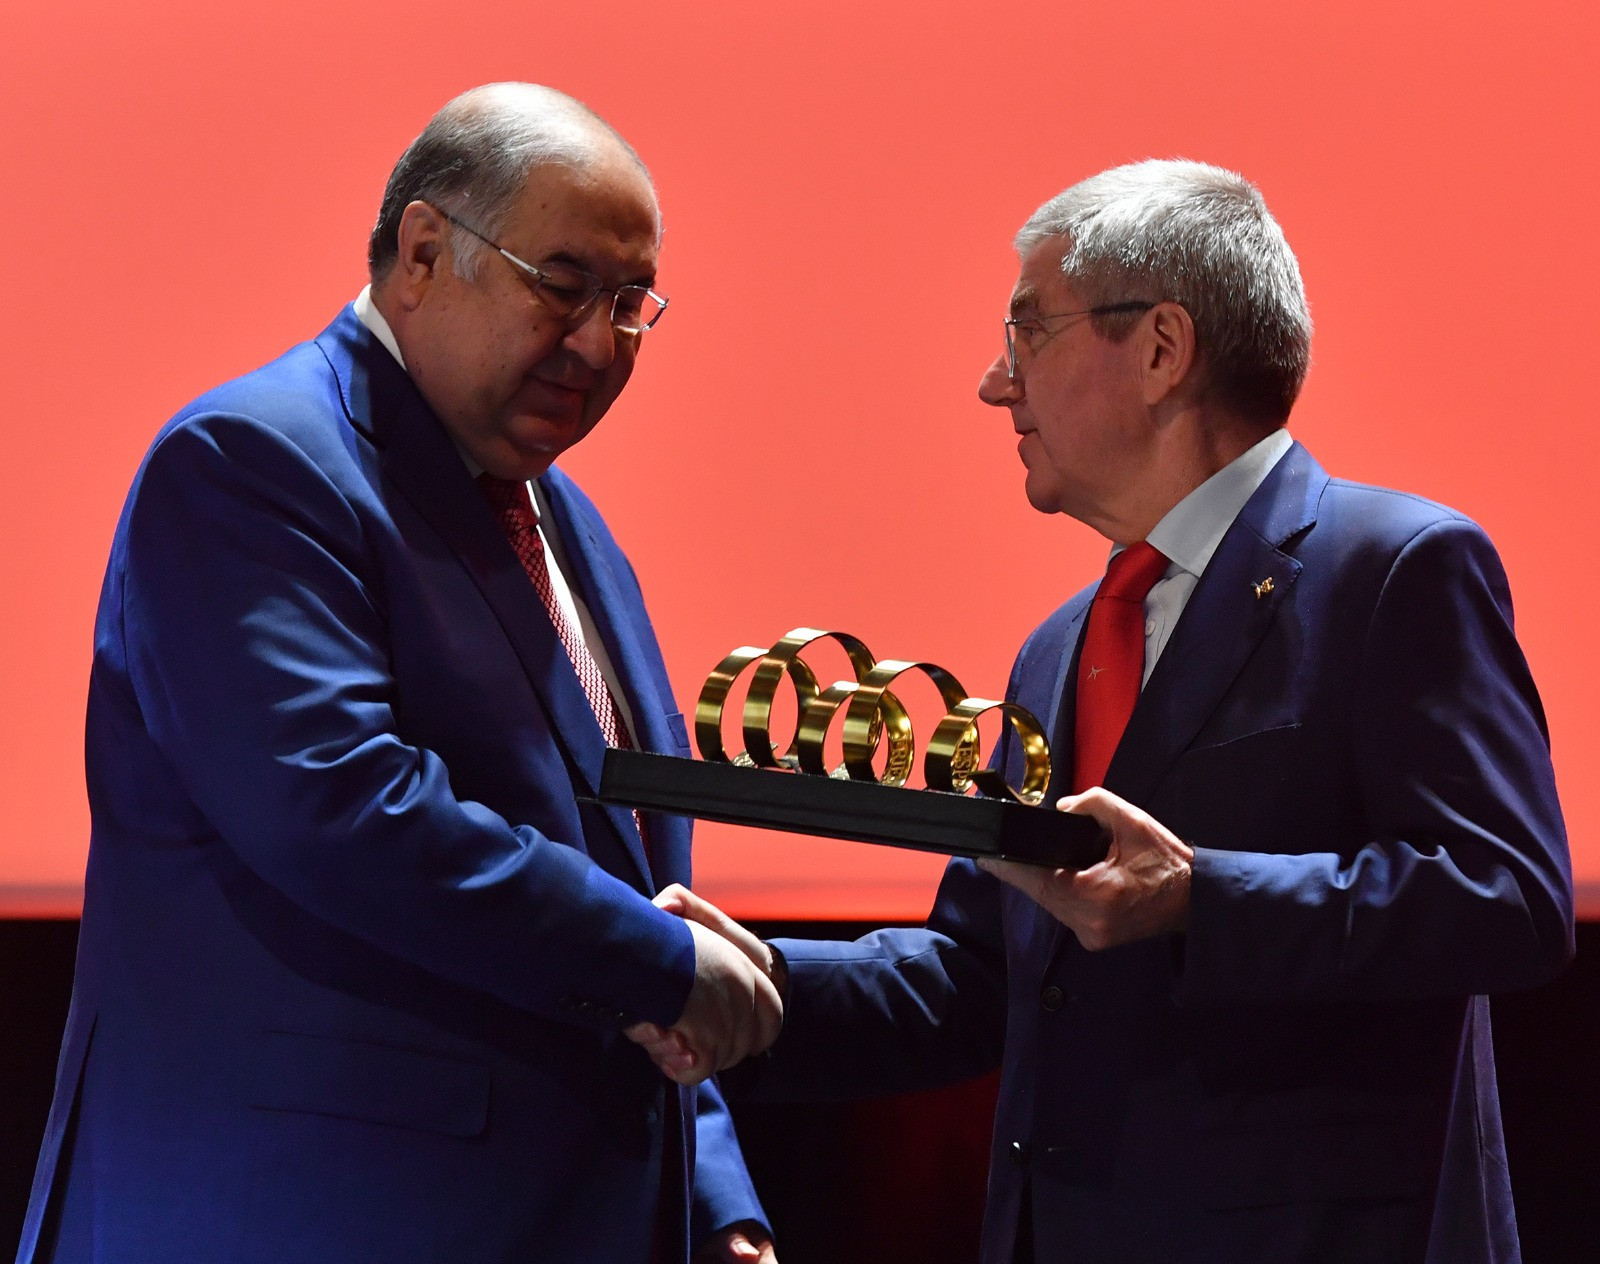 Alisher Usmanov, left, and International Olympic Committee President Thomas Bach, right, each presented one another with awards at the FIE Congress in Lausanne ©FIE